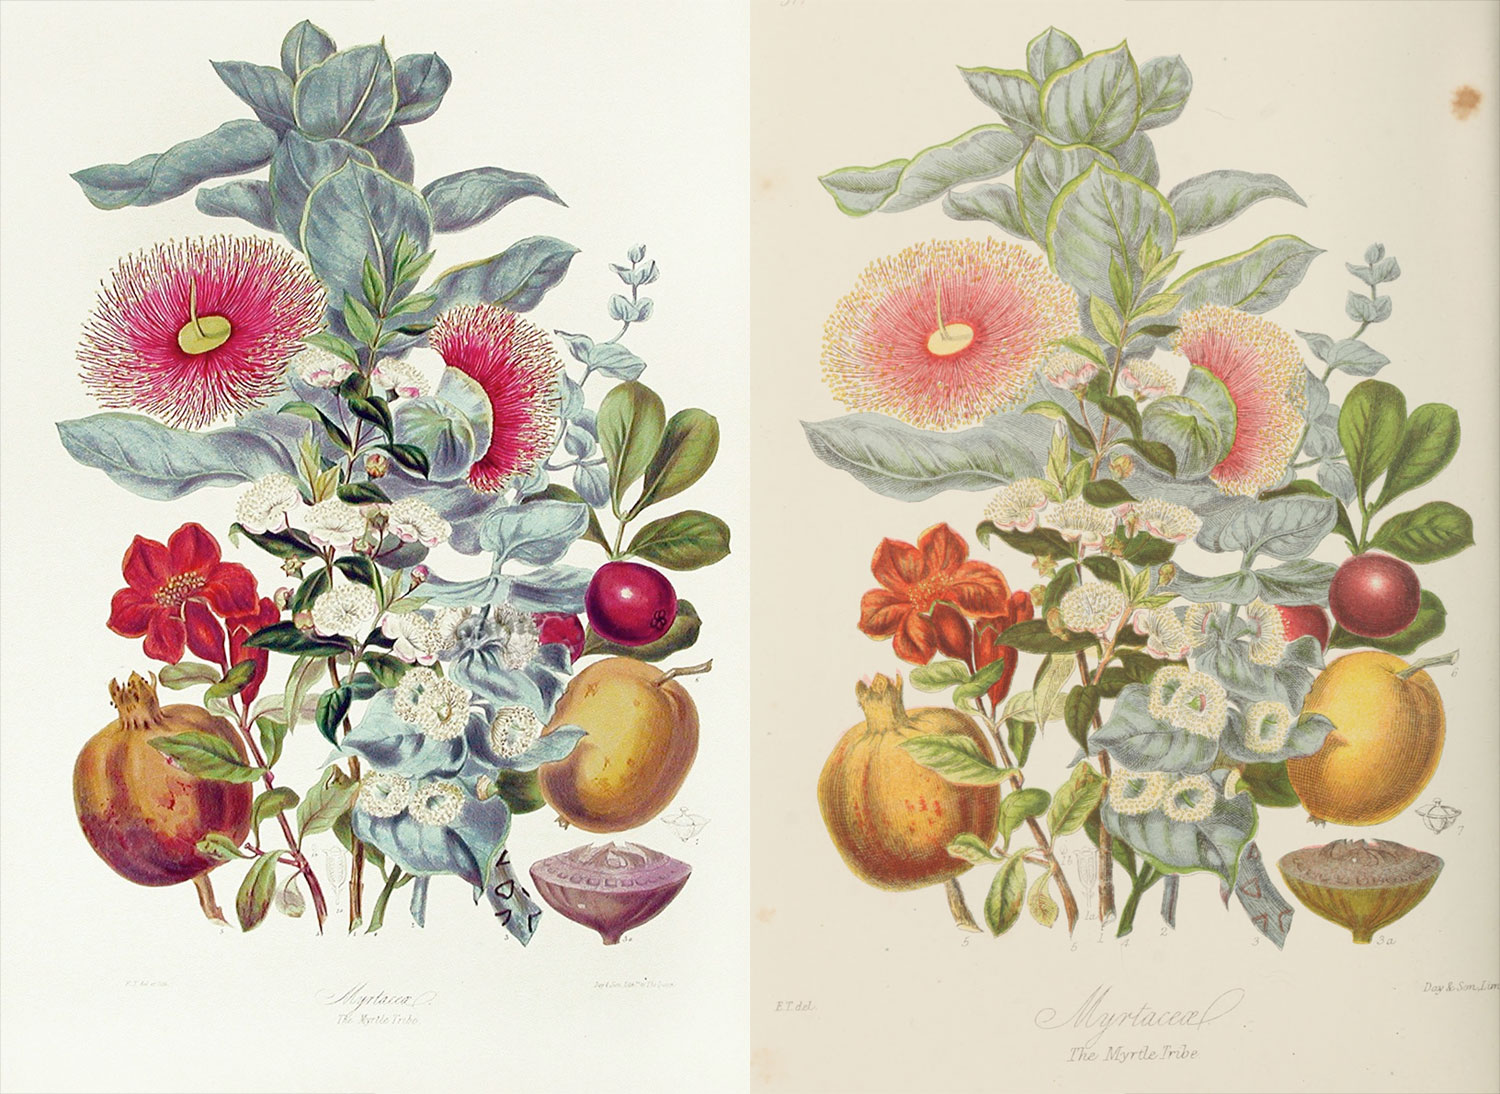 Side-by-side comparison of the original lithograph (left) and reproduction (right) of the myrtle tribe